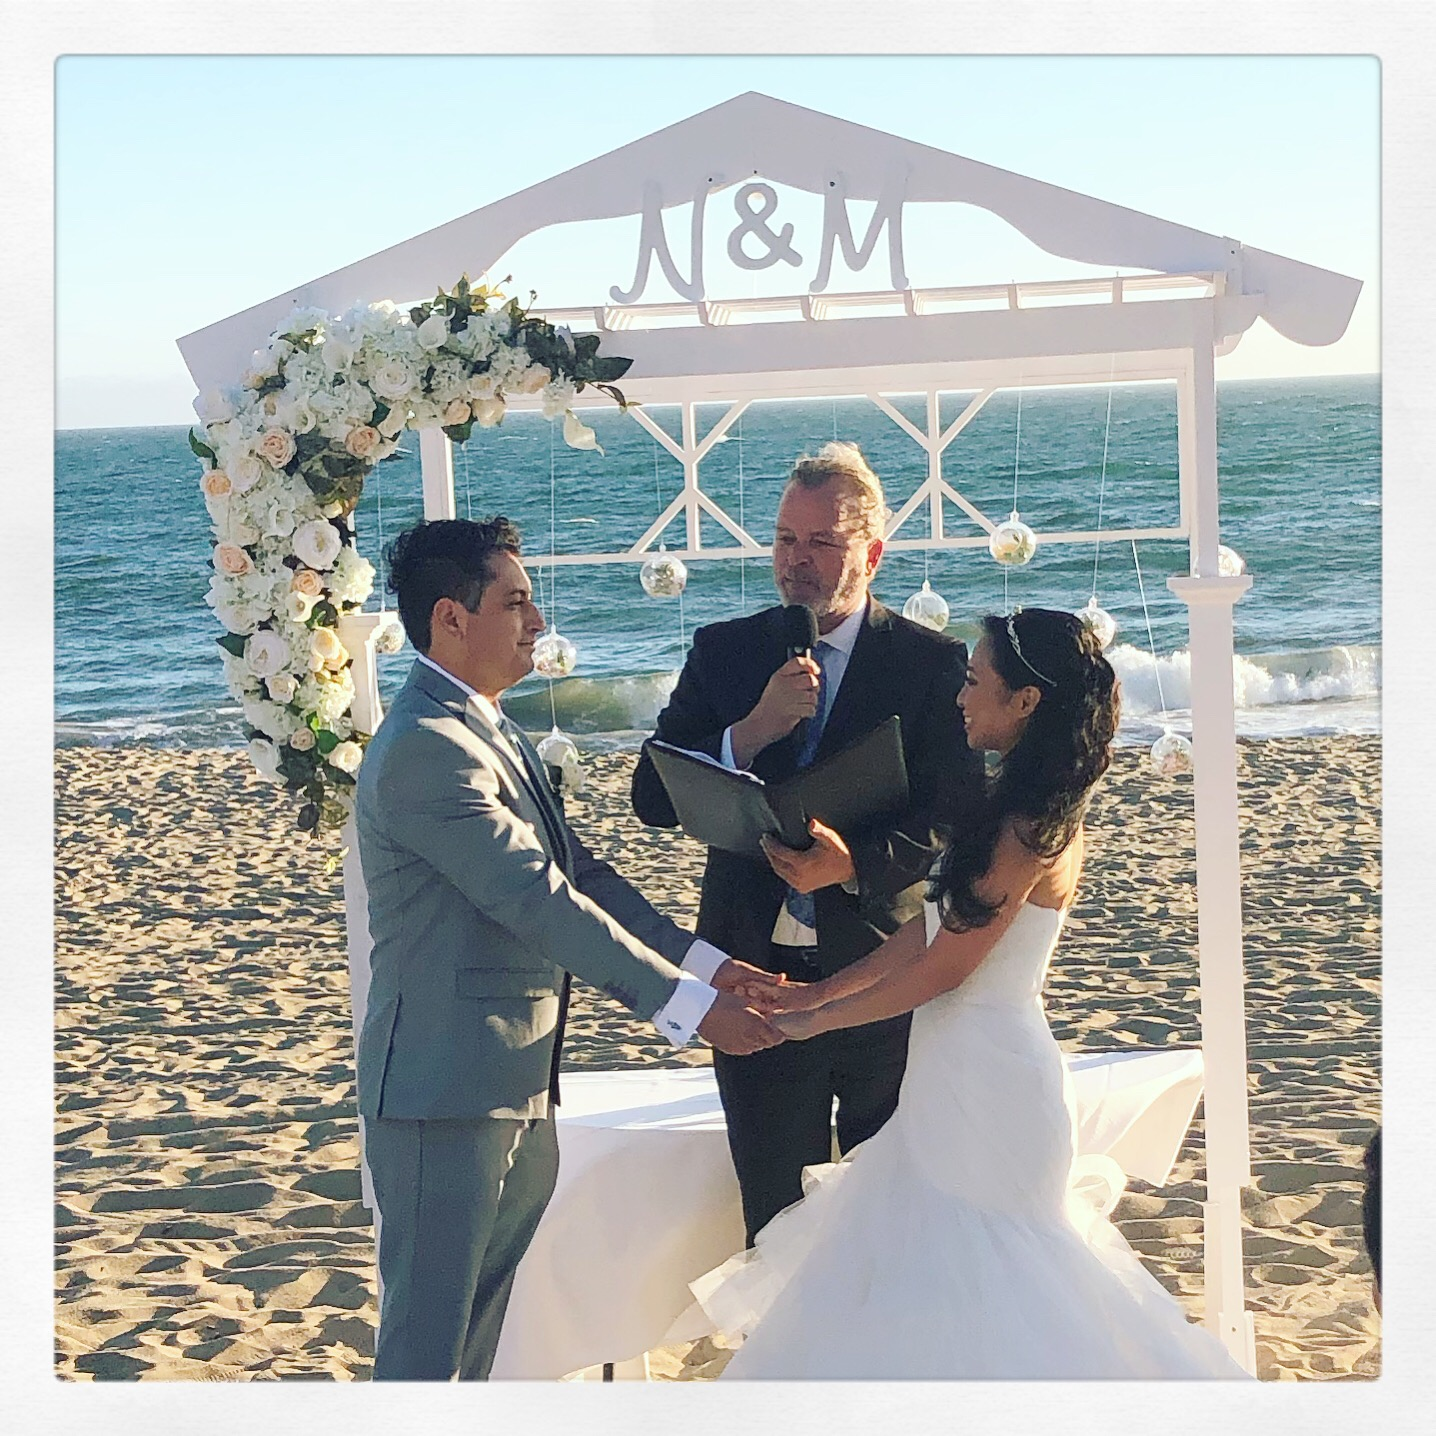 Naisa & Max's Small Summer Beach Wedding Ceremony - The Sunset